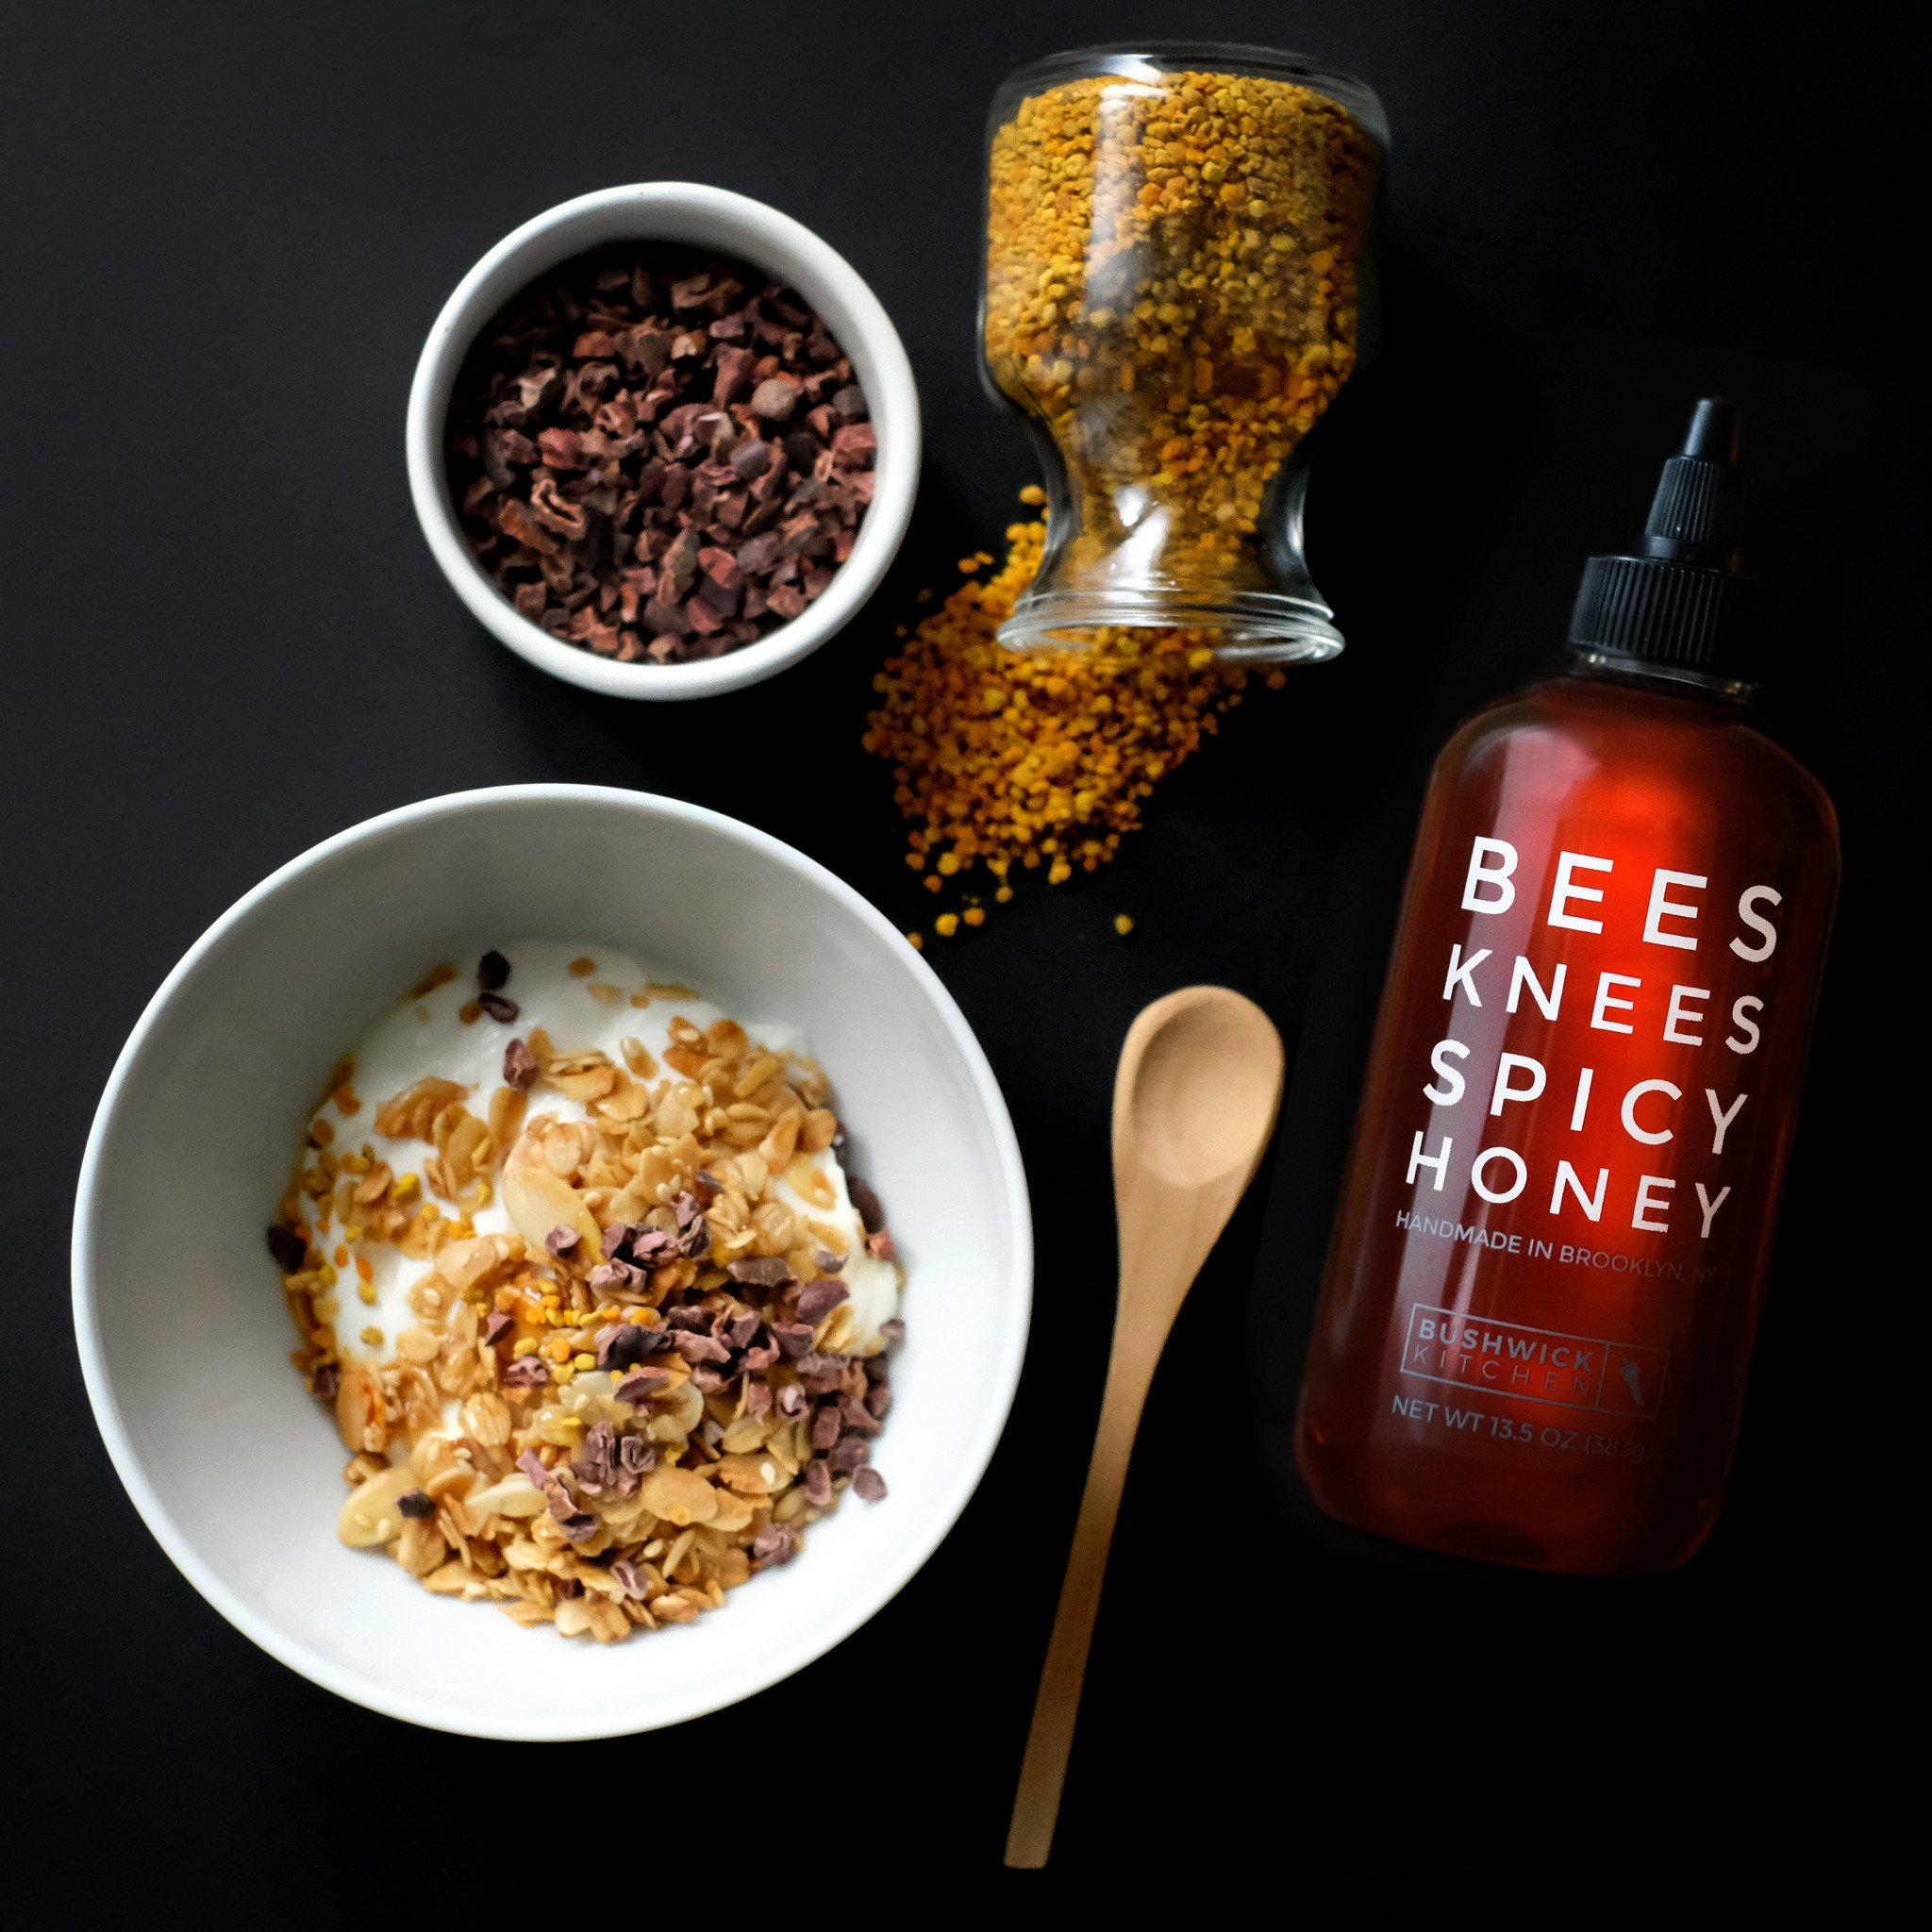 Bees Knees Spicy Honey. That perfect mixture of spicy and sweet. Goes great with everything from Pizza - Yogurt.